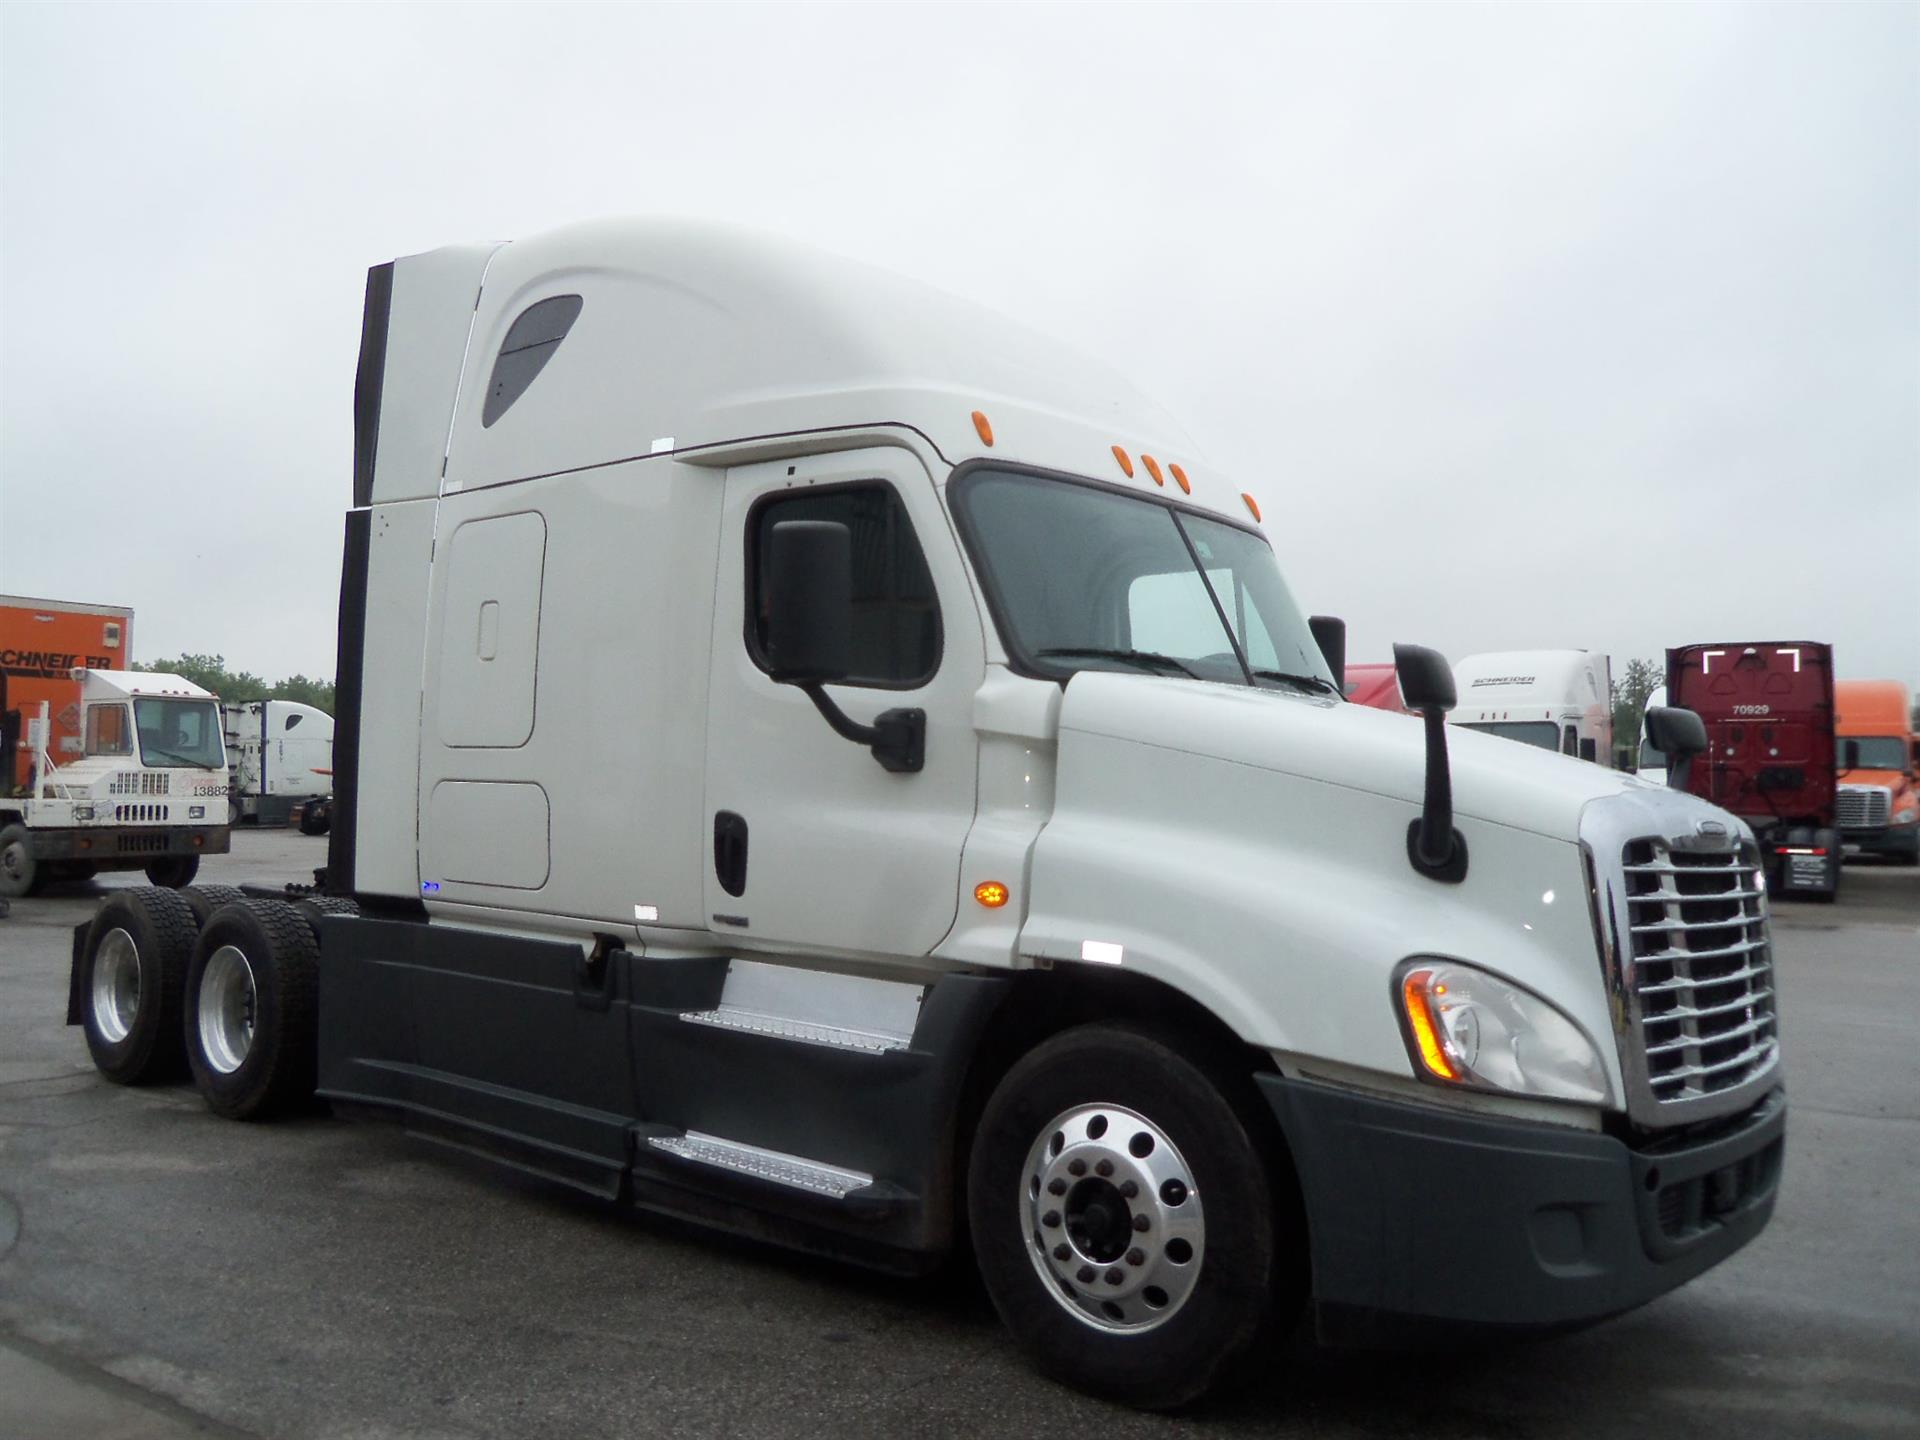 USED 2014 FREIGHTLINER CASCADIA SLEEPER TRUCK #127073